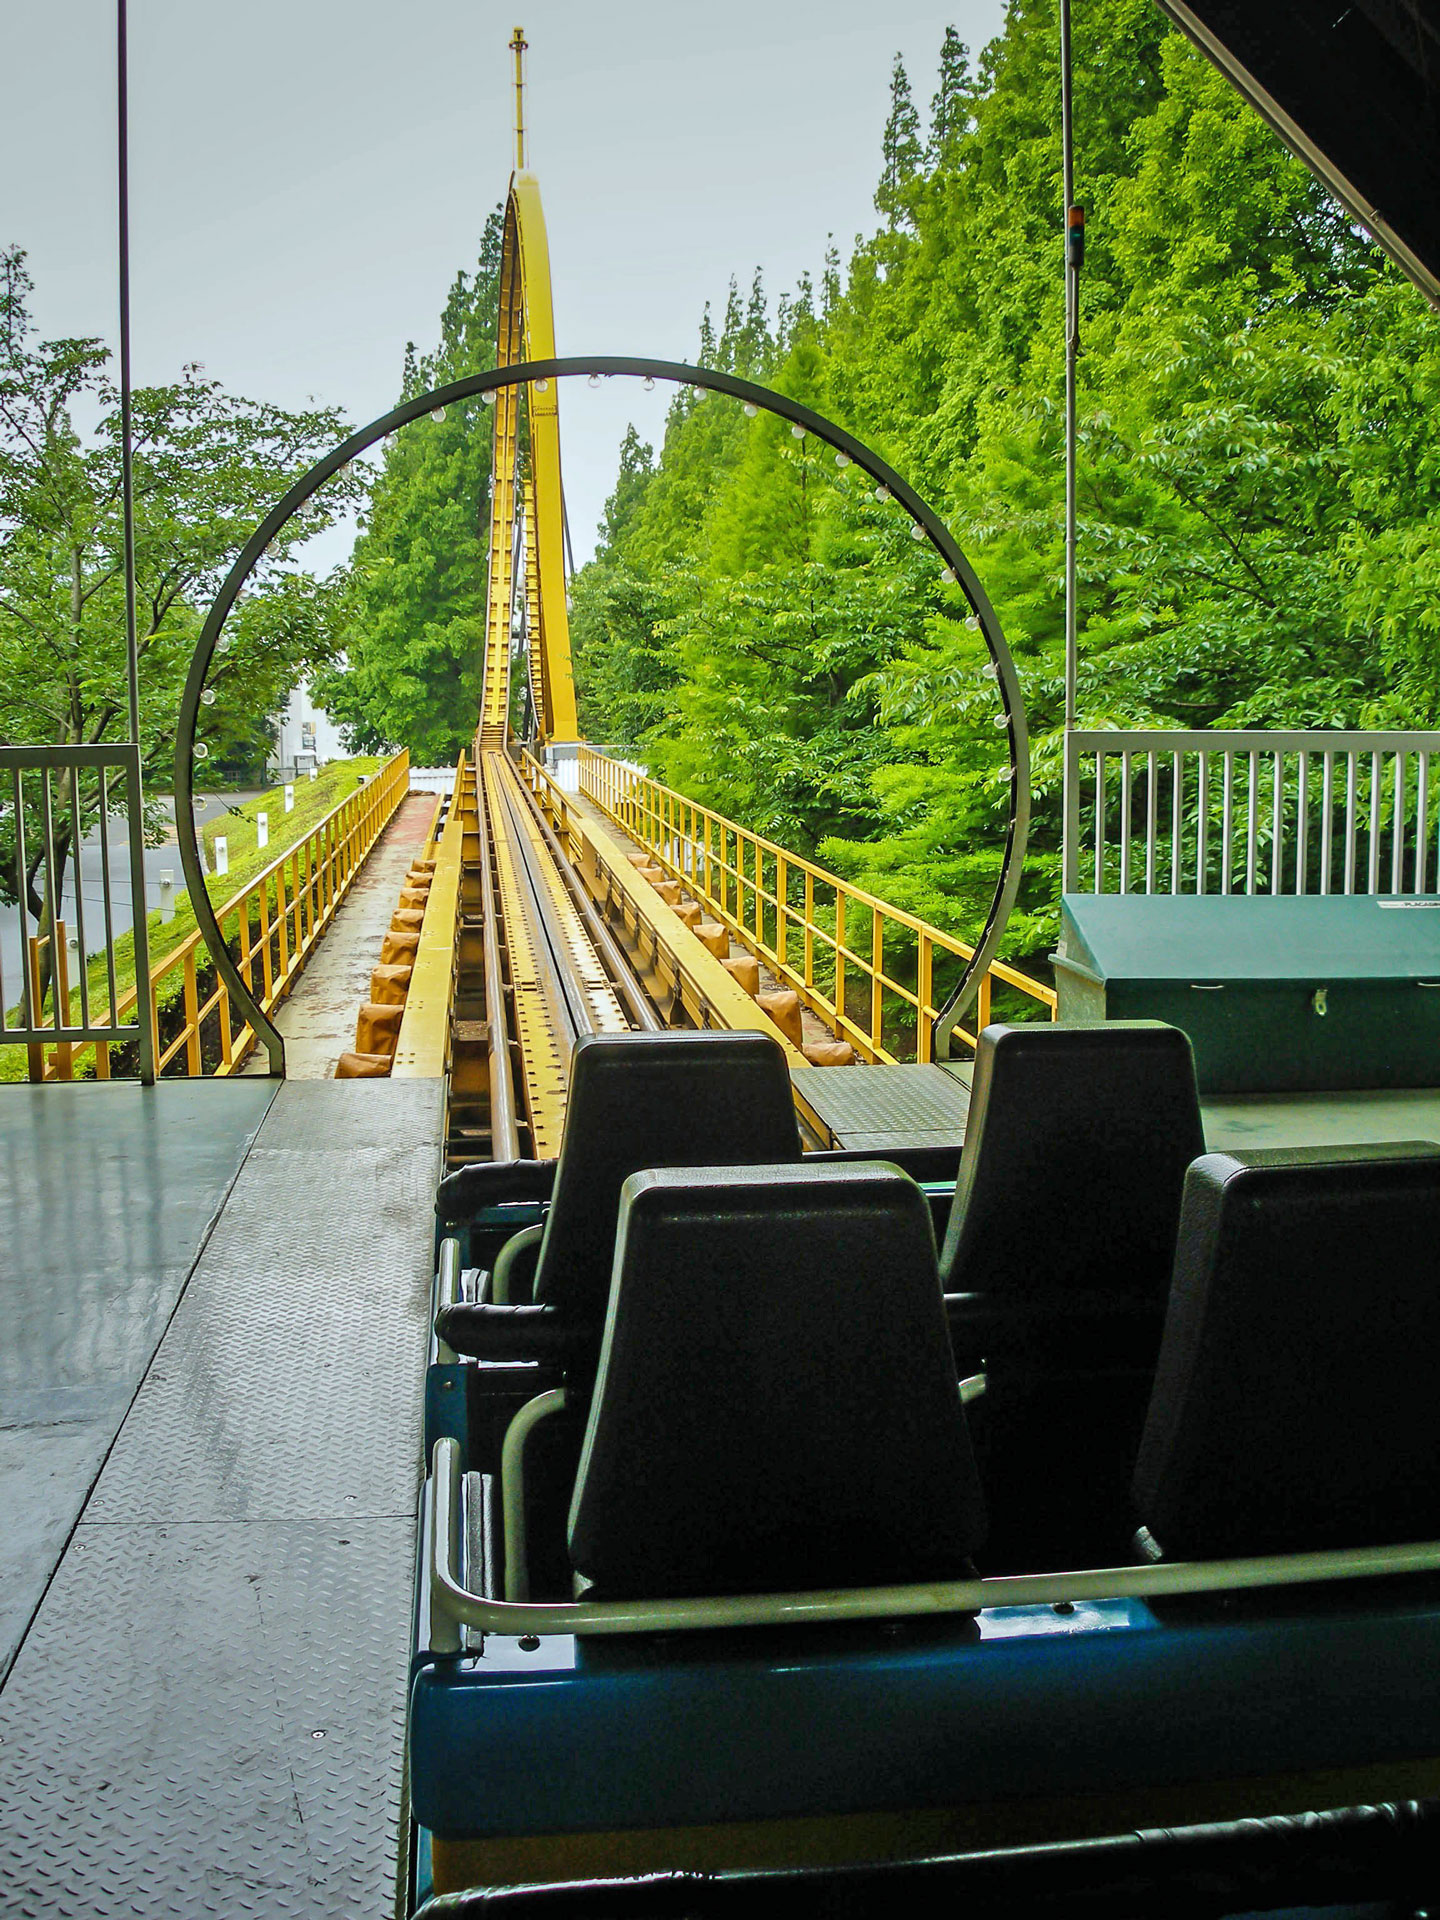 Compressed Air Car >> CATAPULT LAUNCH COASTERS - COASTERFORCE